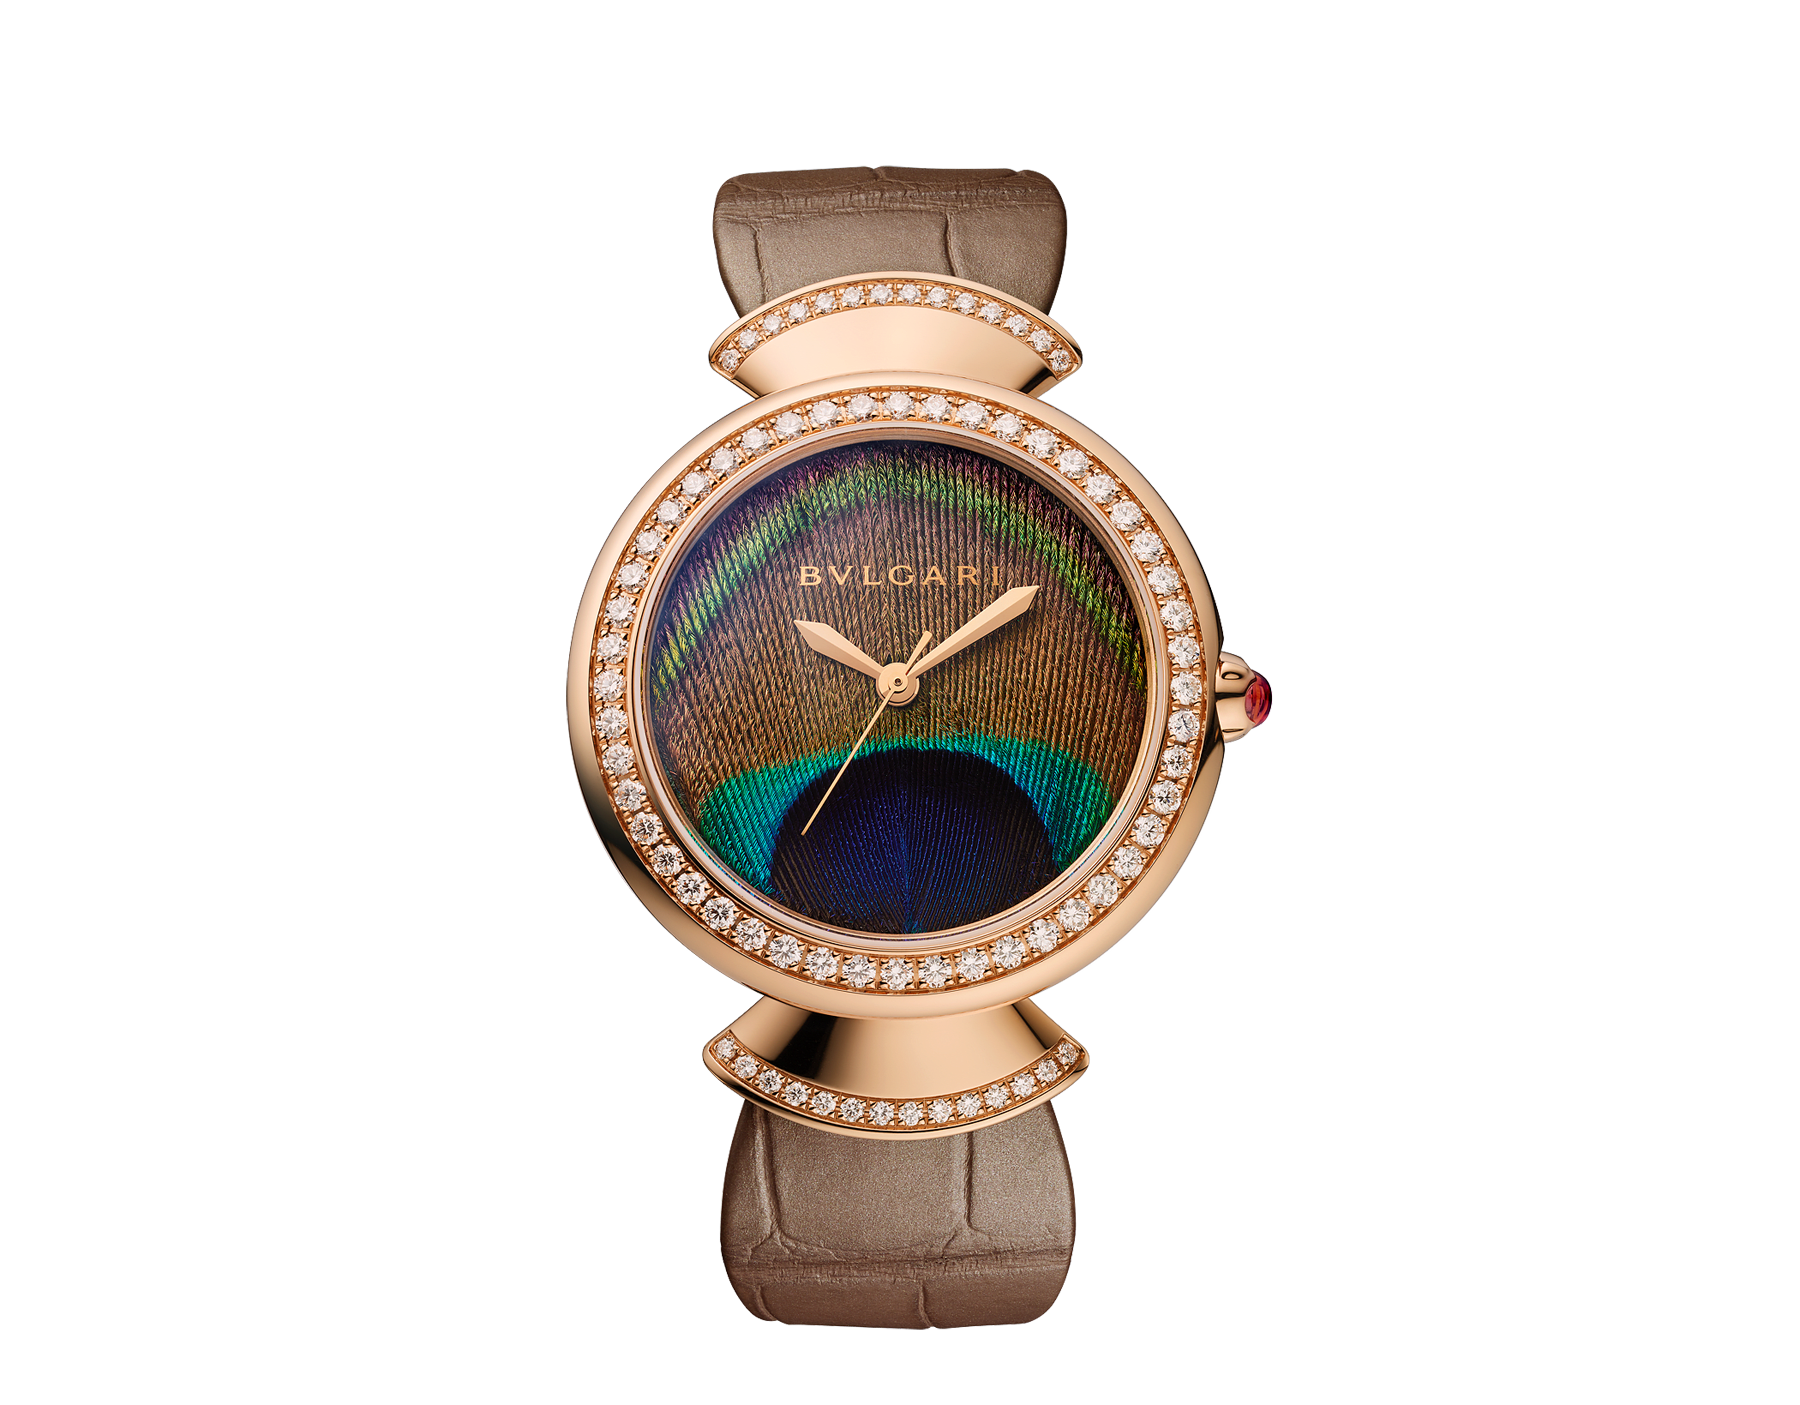 DIVAS' DREAM watch with in-house manufacture mechanical movement, automatic winding, 18 kt rose gold case, 18 kt rose gold bezel and fan-shaped links both set with brilliant-cut diamonds, natural peacock feather dial and shiny beige alligator strap 103139 image 1